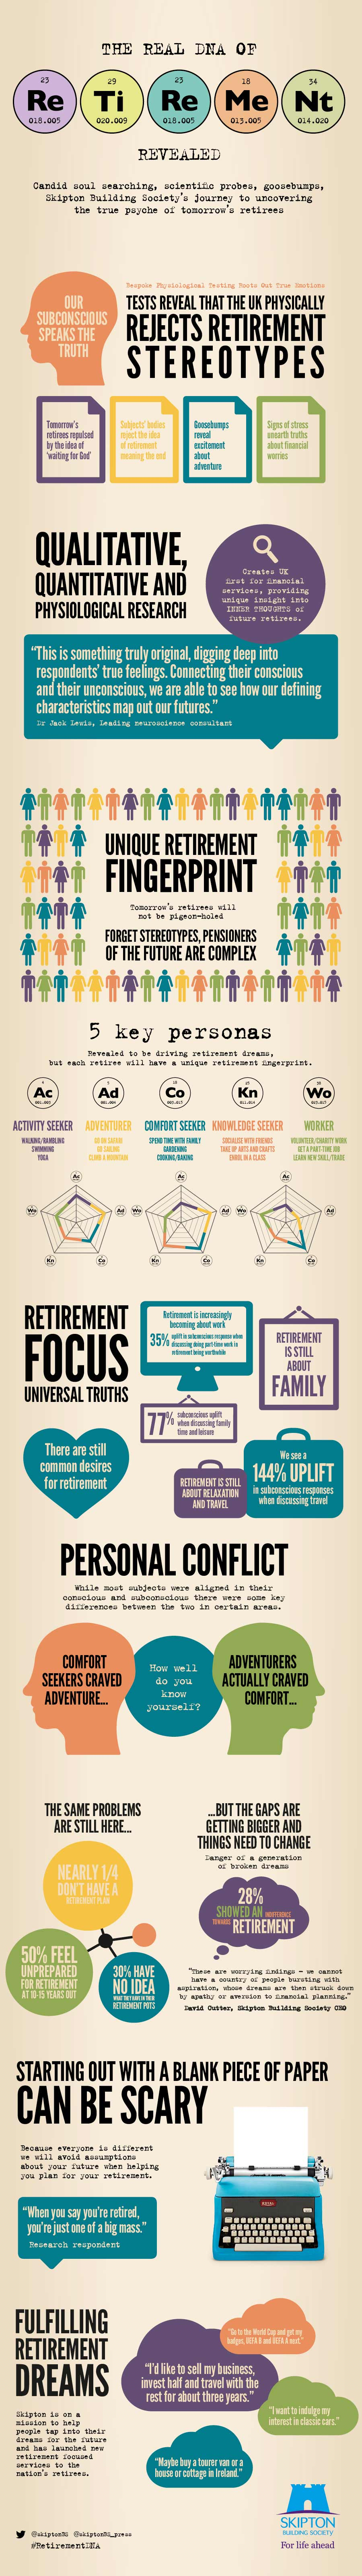 Infographic showing the real DNA of retirement